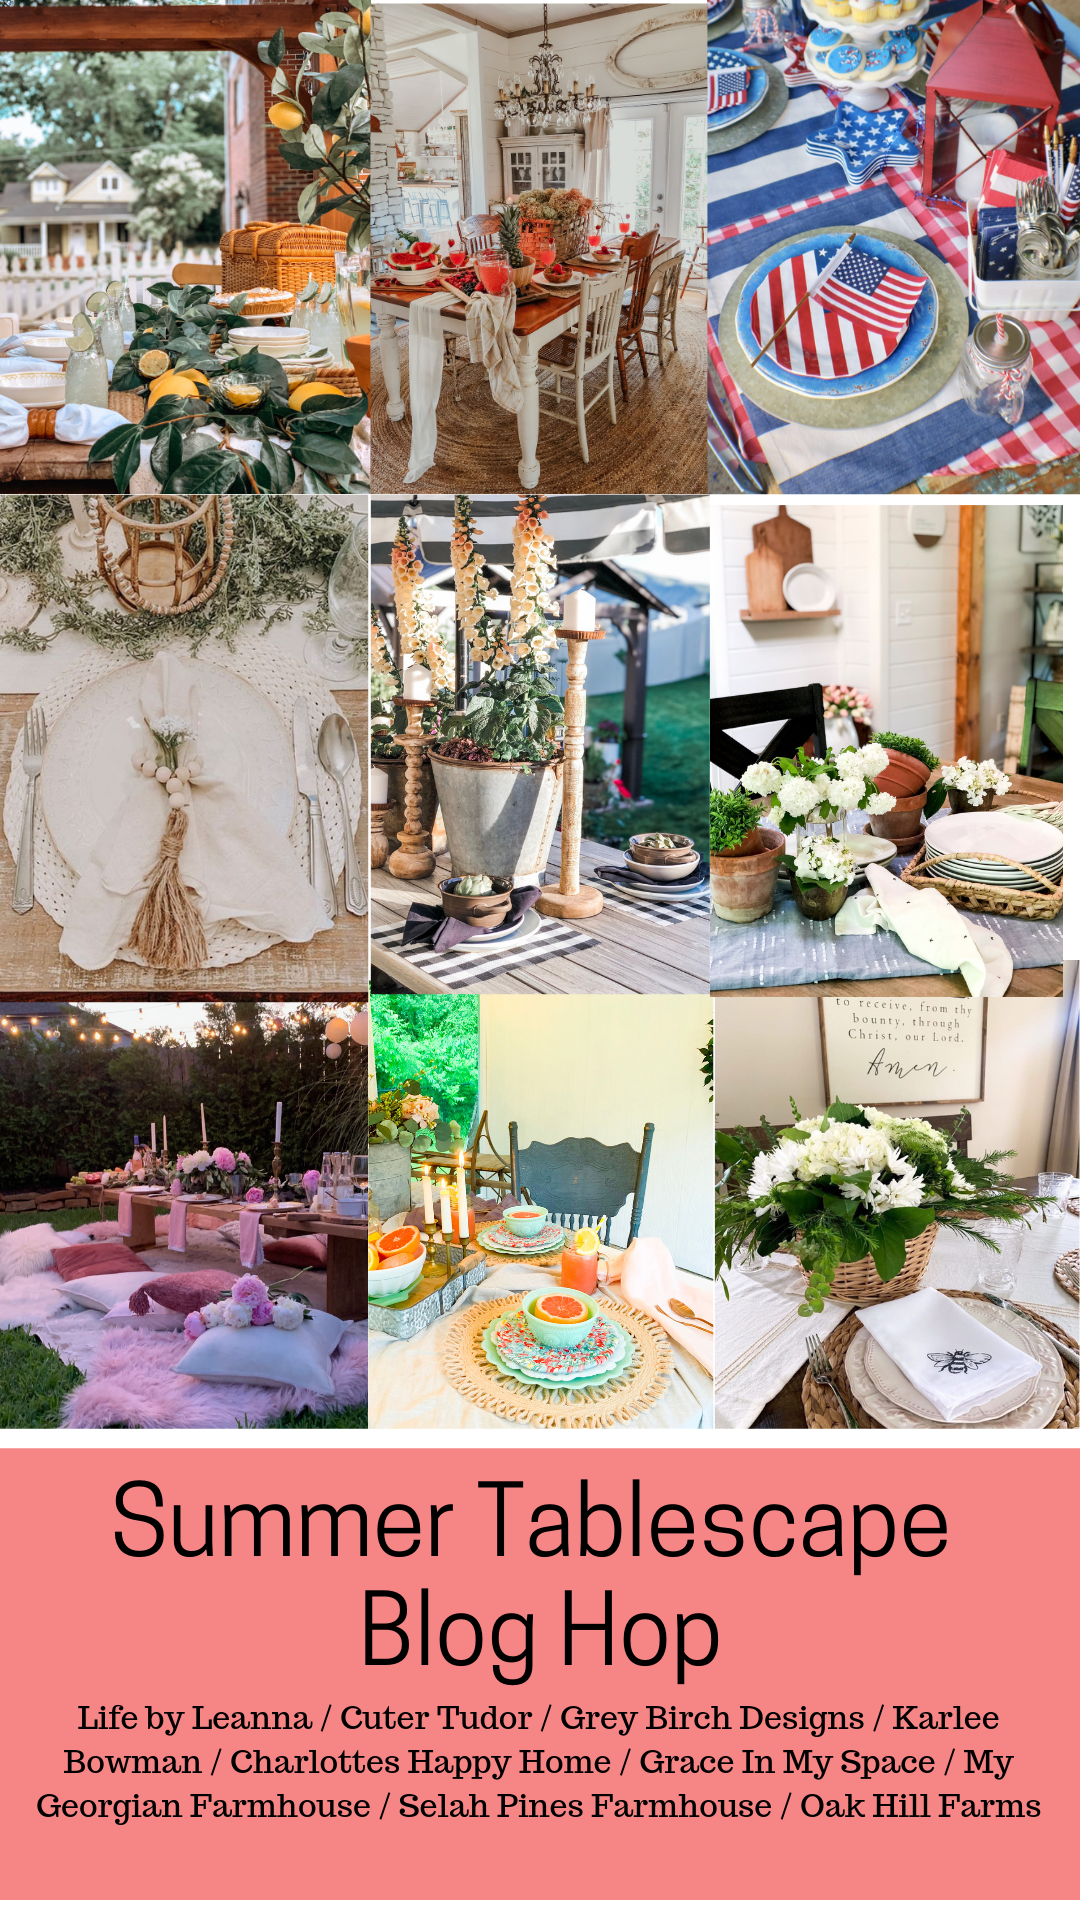 Are you looking for a themed summer tablescape idea? Here are 9 summer tablescapes to be inspired by. #fromhousetohaven #summerdecor #summertablescape #gardenparty